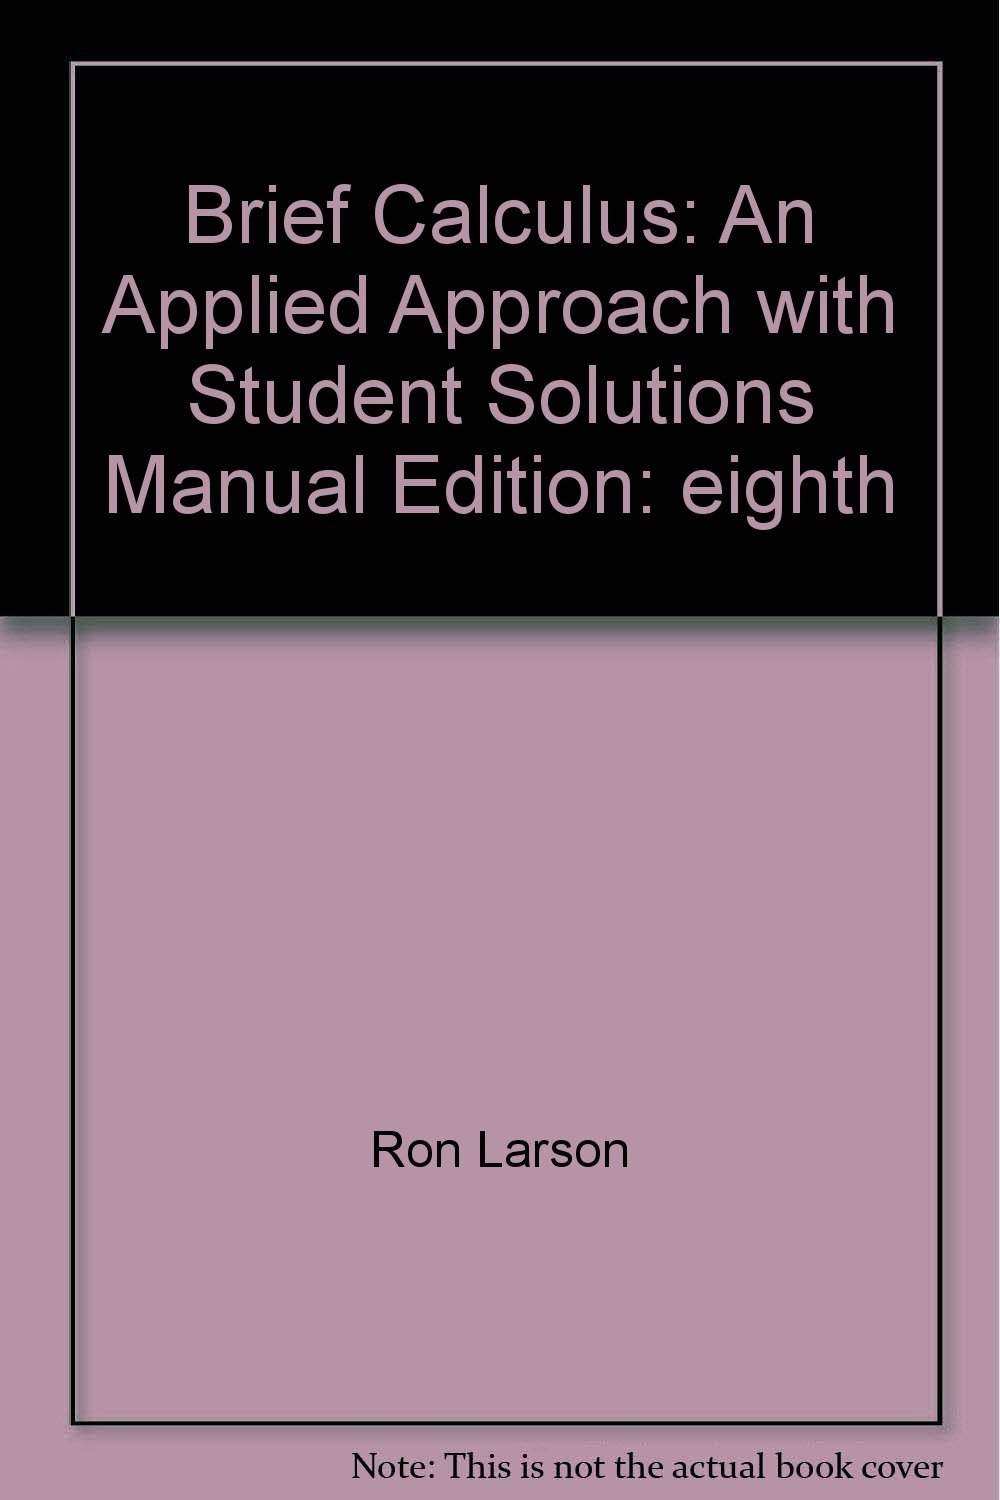 Brief Calculus: An Applied Approach with Student Solutions Manual: Ron  Larson: 9780547084466: Amazon.com: Books